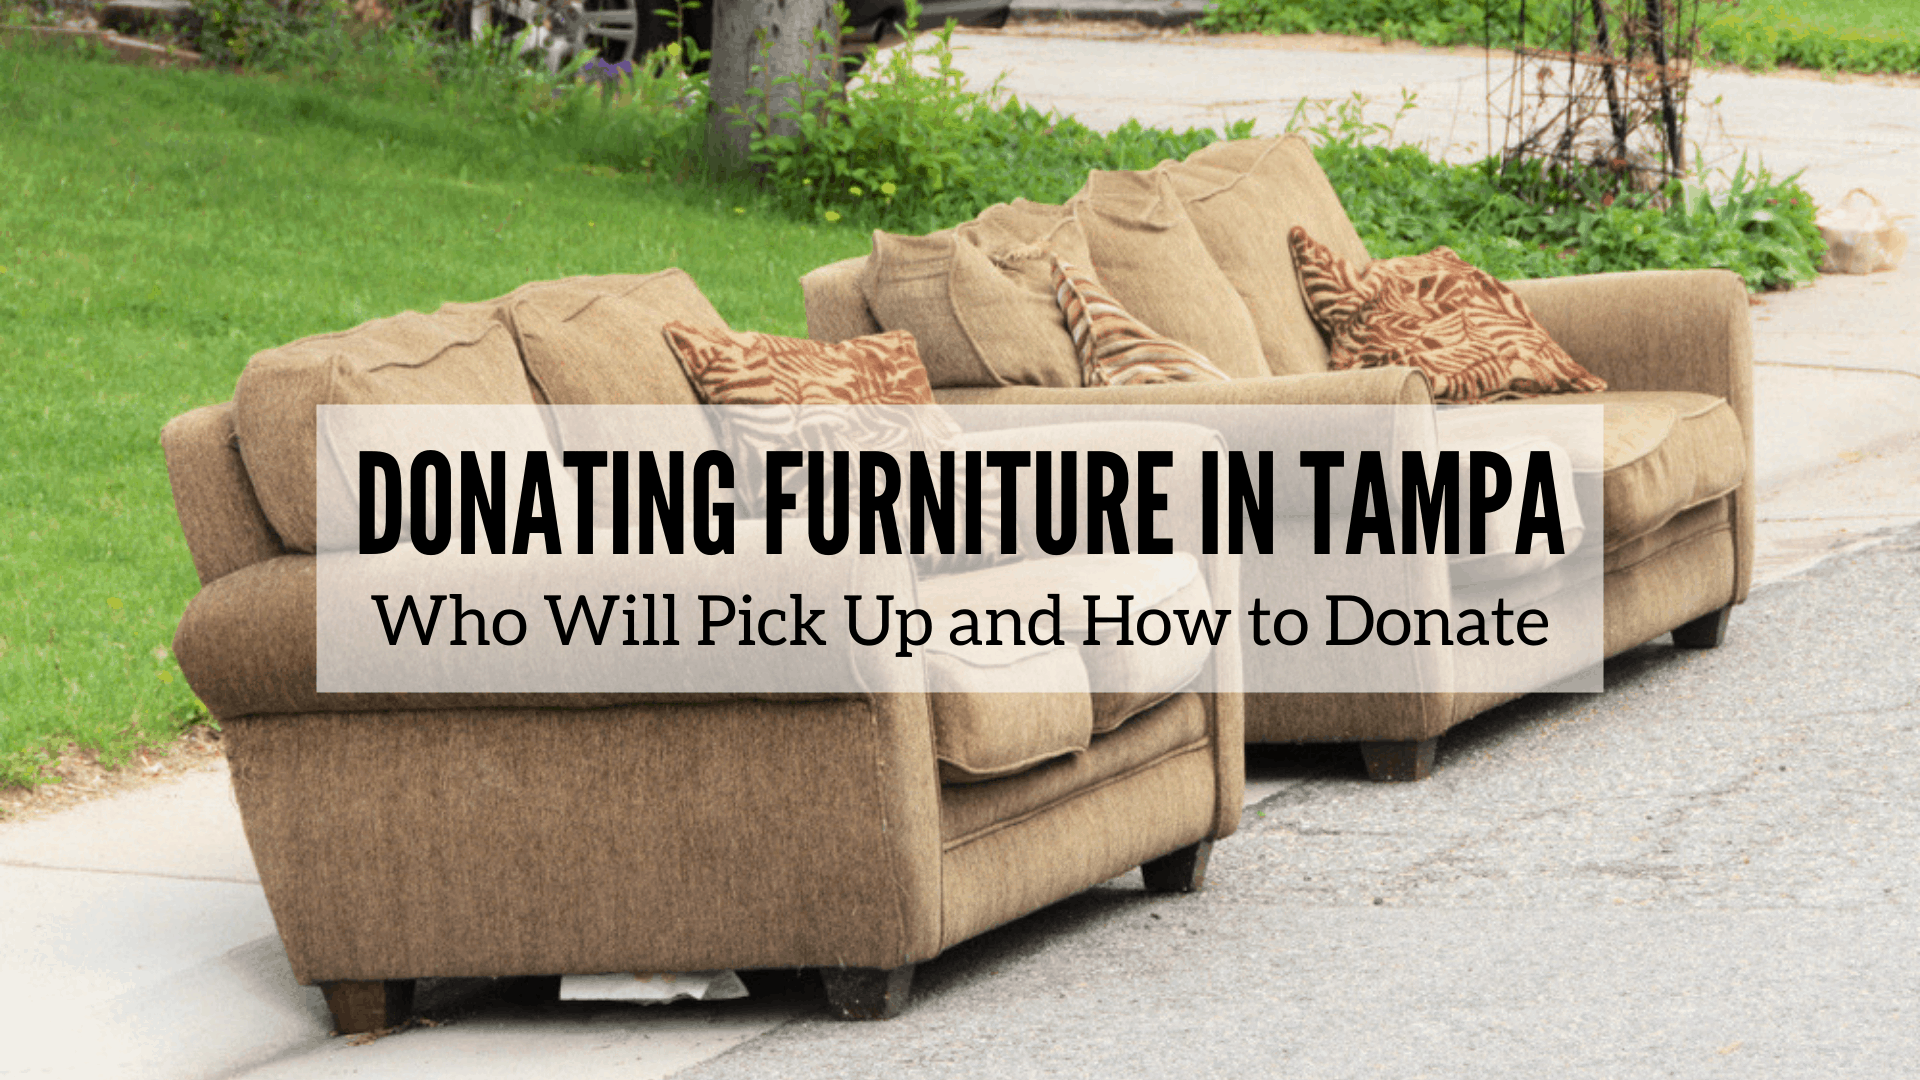 Donating Furniture in Tampa | Who Will Pick Up and How to Donate